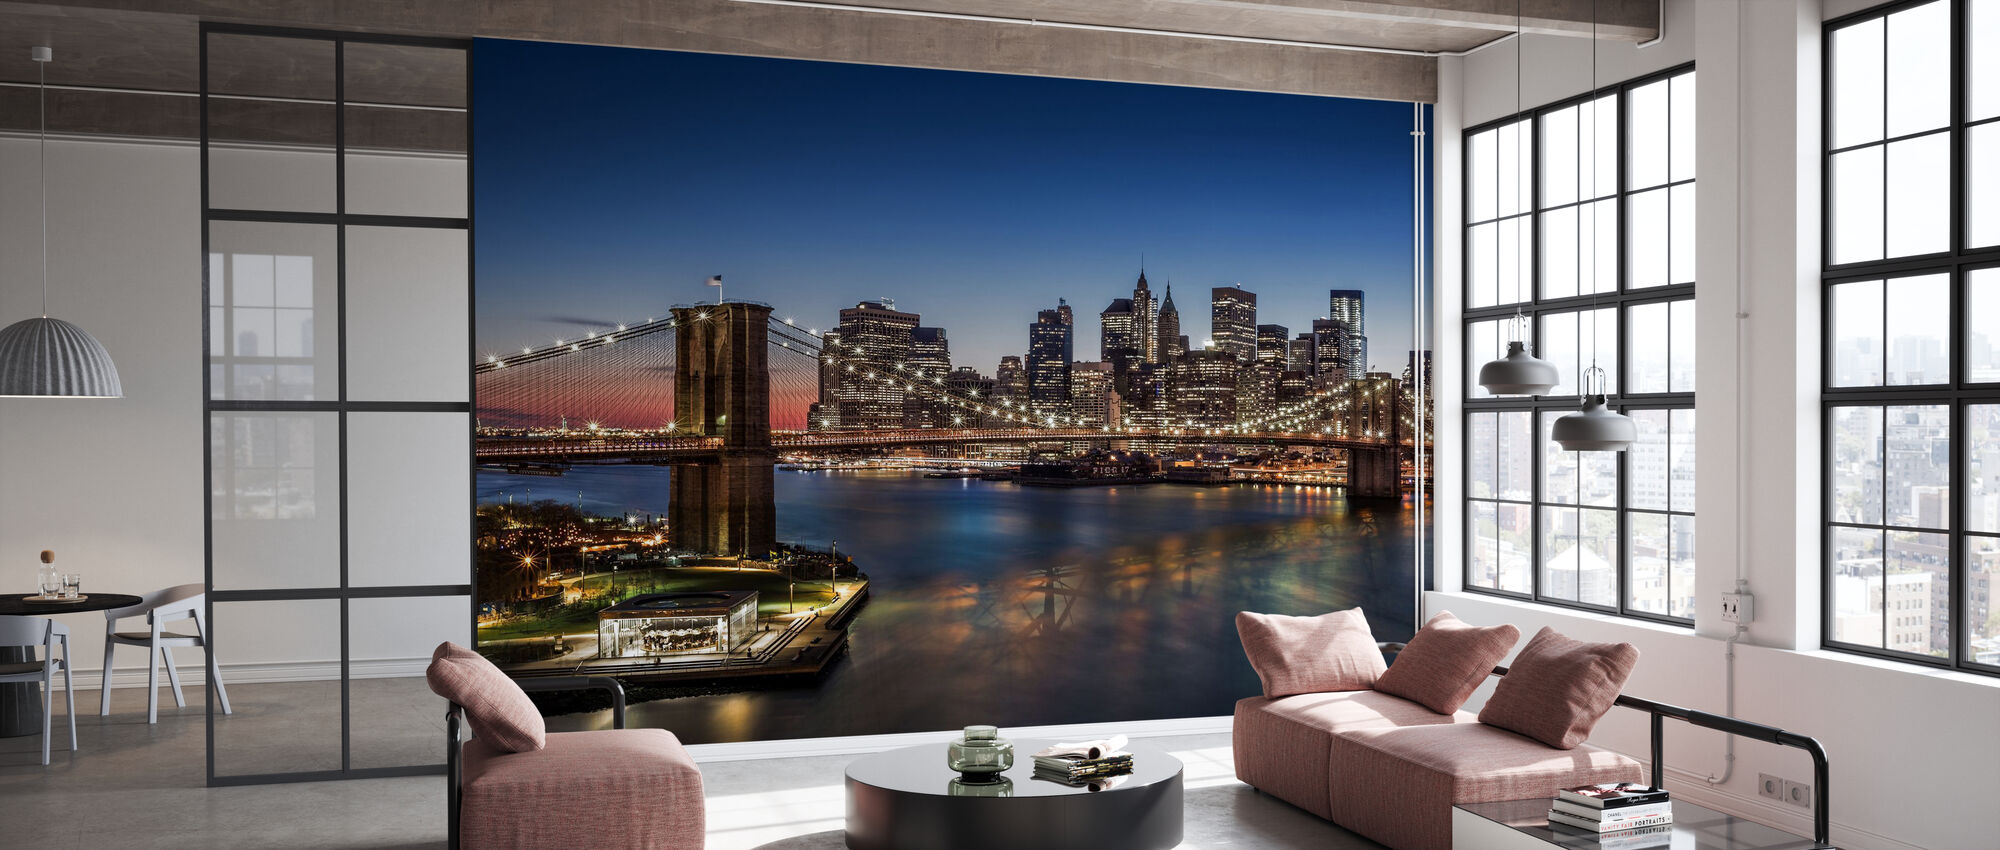 Brooklyn Bridge and Downtown Manhattan - Wallpaper - Office